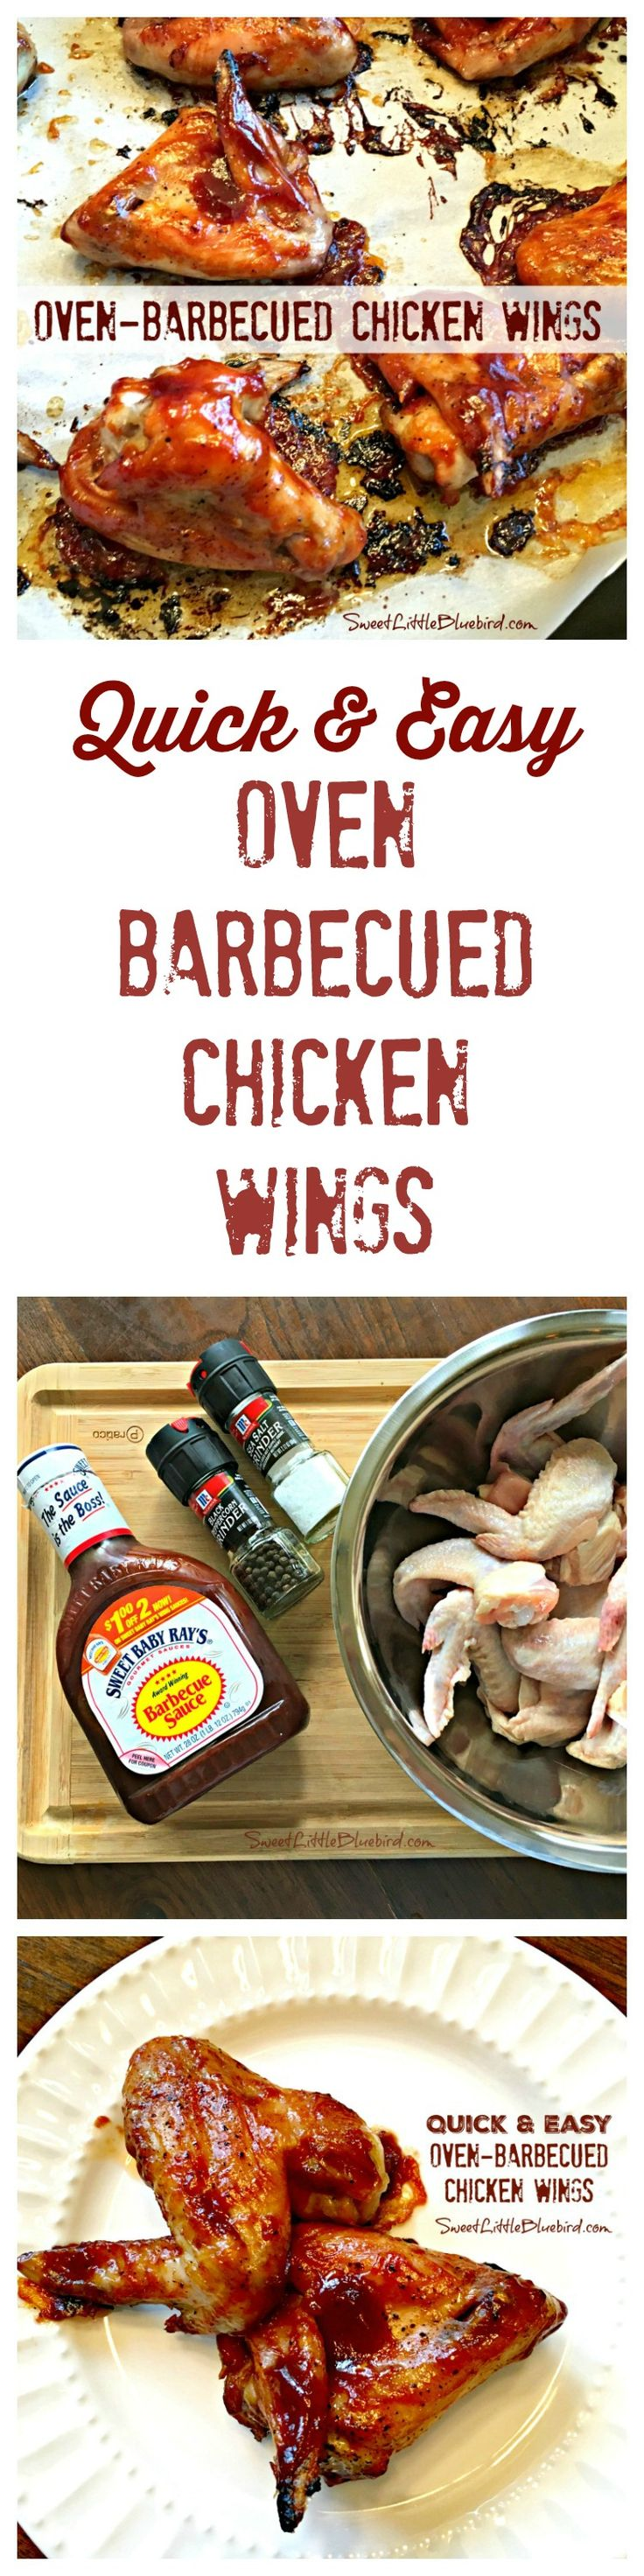 QUICK & EASY OVEN-BARBECUED CHICKEN WINGS - Delicious, fast and easy way to make wings in the oven. Perfect for game day, parties or a fun, budget-friendly dinner! Family Favorite!